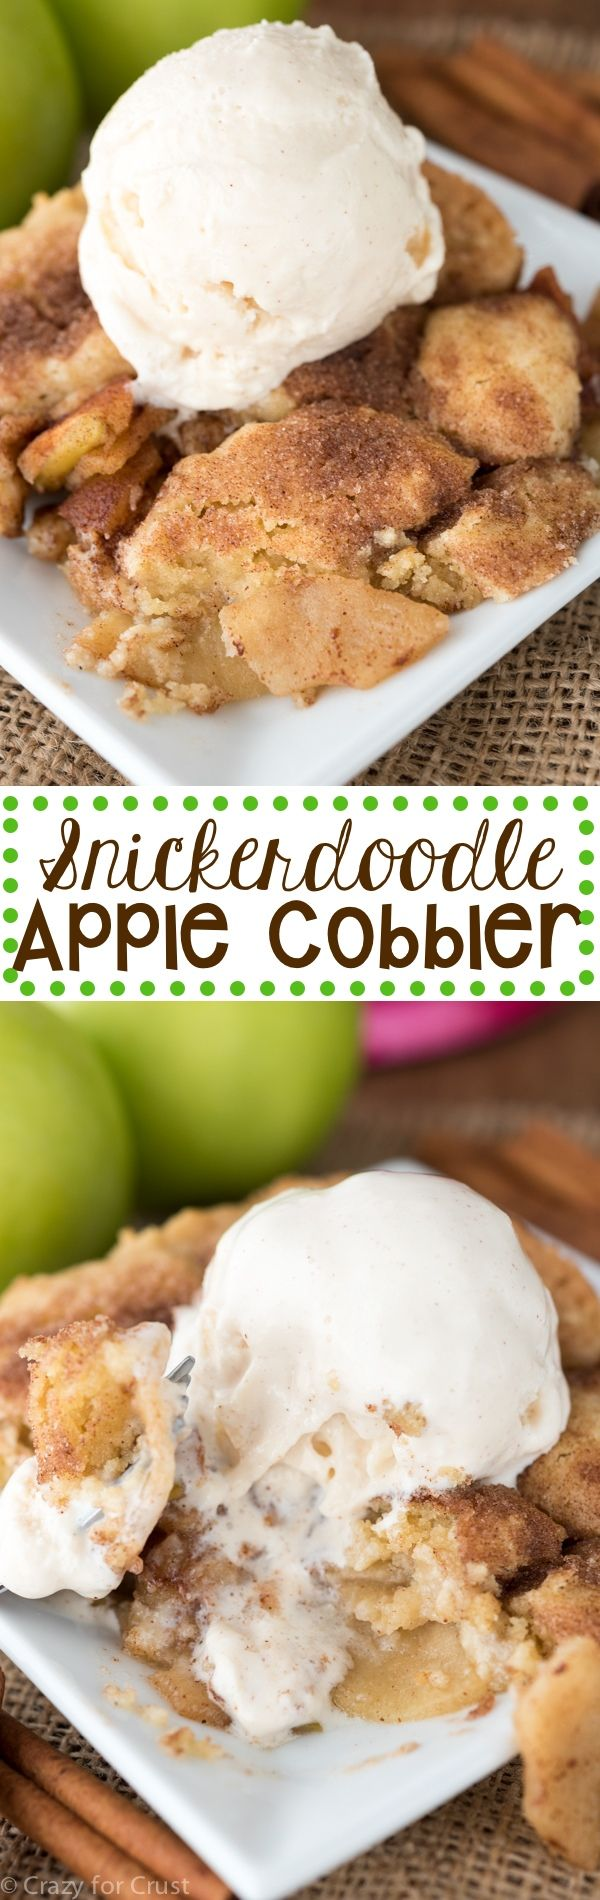 Snickerdoodle Apple Cobbler - this easy fall recipe changes the traditional cobbler into a snickerdoodle cookie cobbler!